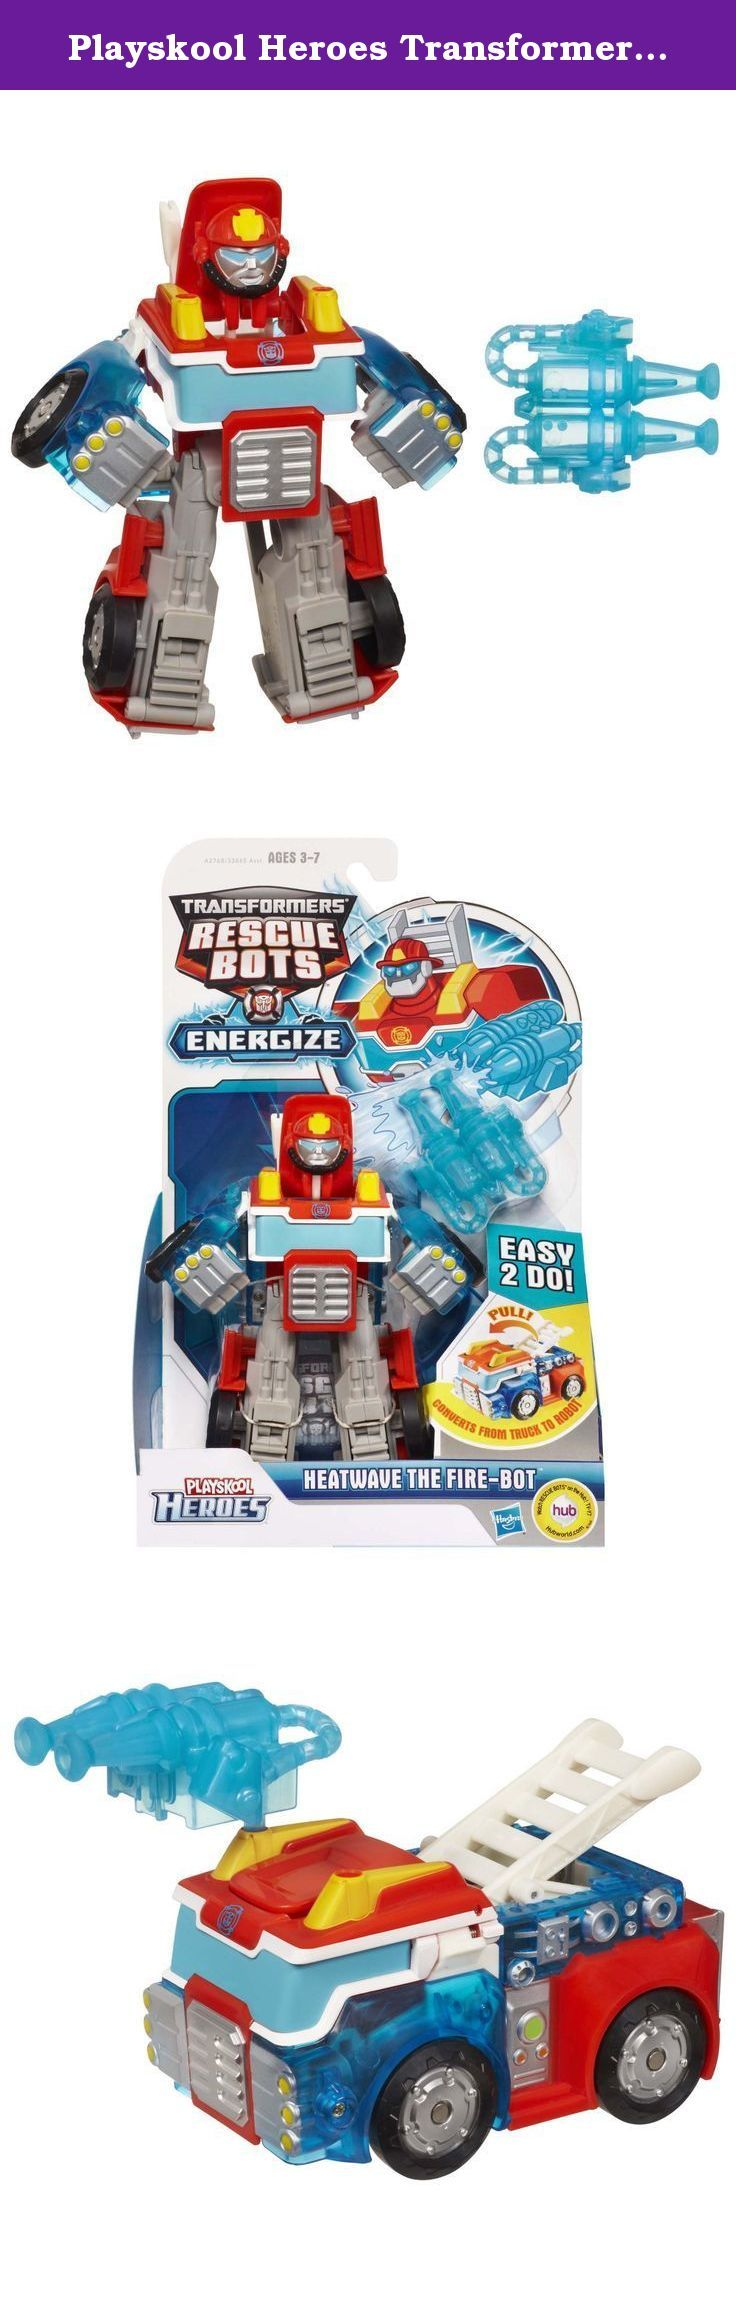 """Playskool Heroes Transformers Rescue Bots Energize Heatwave the Fire-Bot Figure. This classic Transformers character converts easily for the youngest kids. It just takes one easy step for your little one to convert this heroic Heatwave the Fire-Bot figure from robot to fire truck mode and back! He comes with a """"water"""" cannon that attaches to the fire truck's cab in vehicle mode. No matter what dangers await, this Heatwave the Fire-Bot figure is ready to be a hero with your little hero!..."""